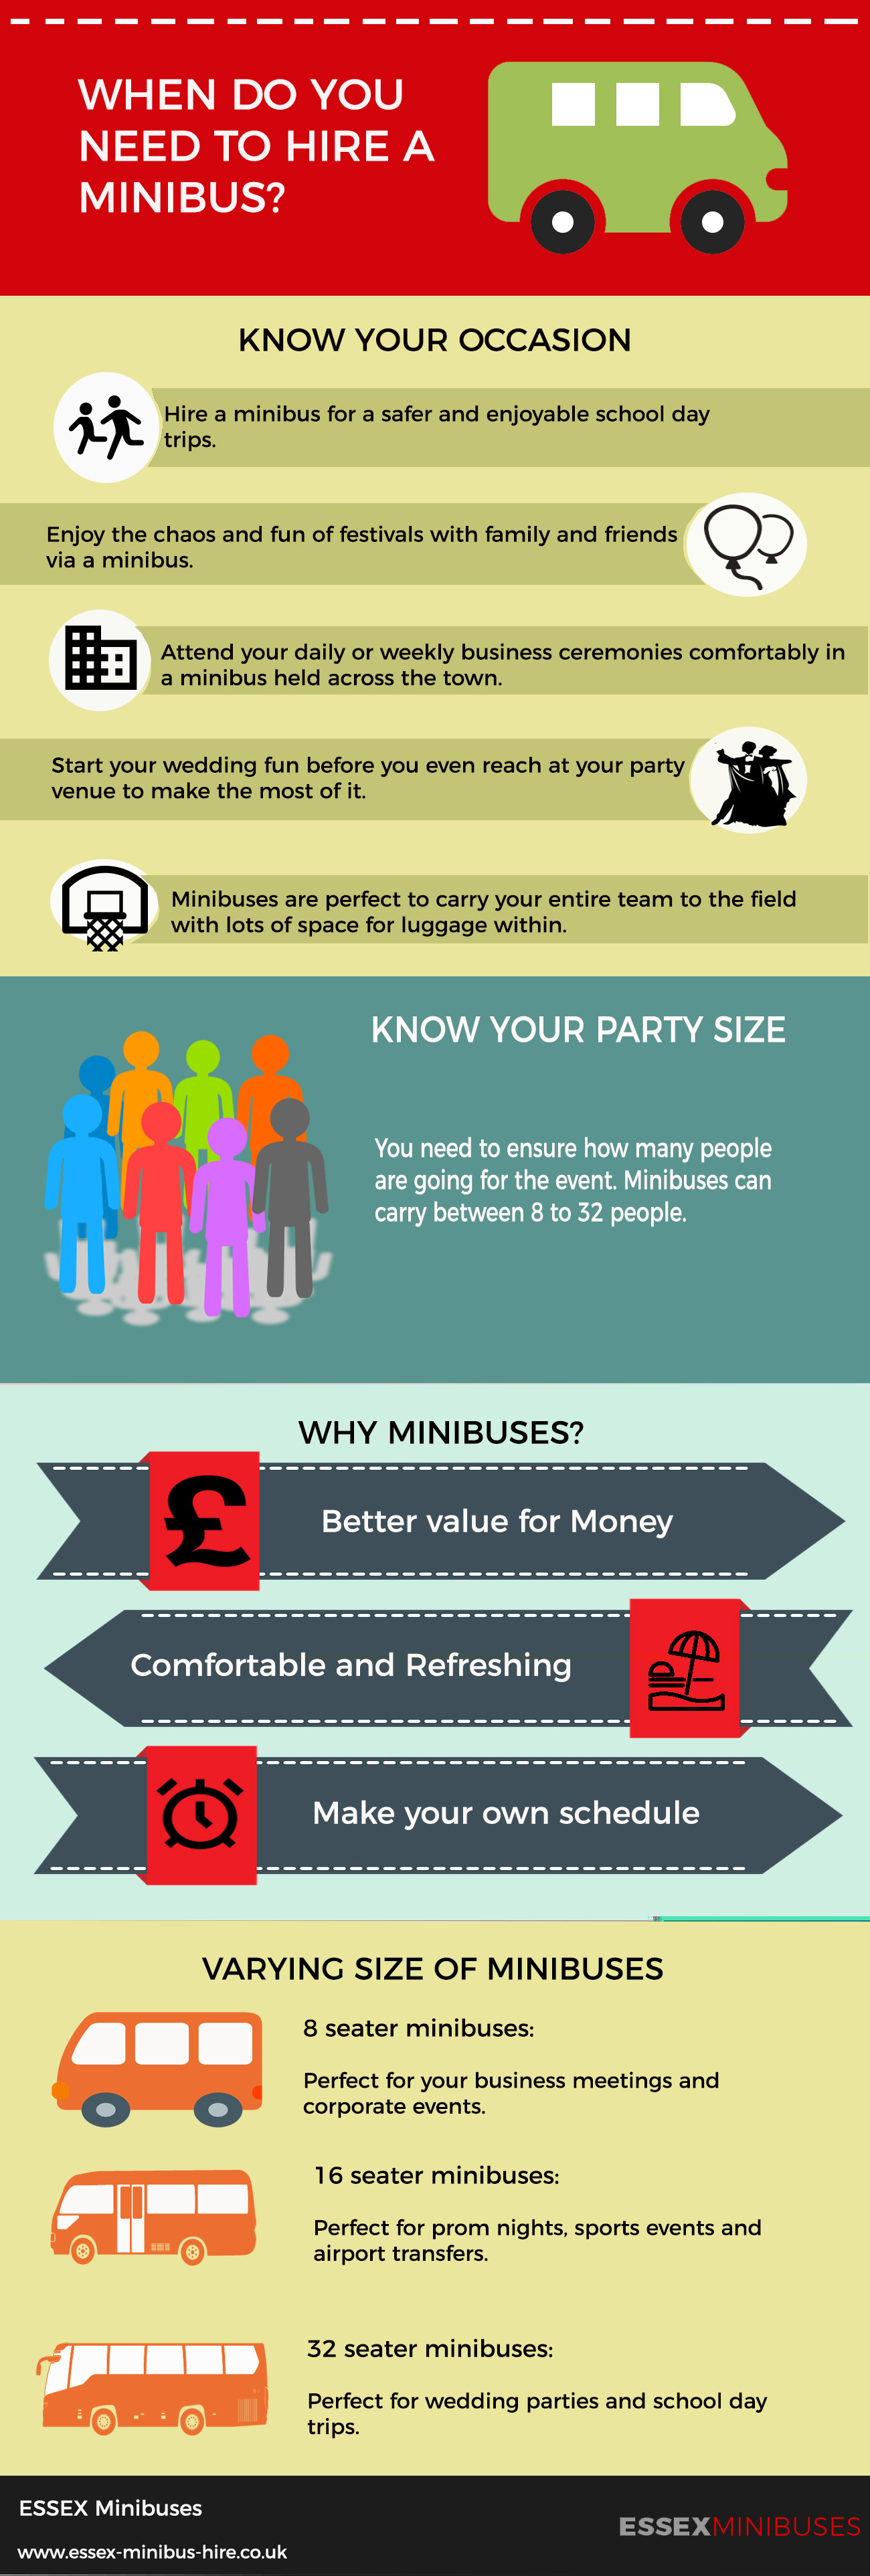 When Do You Need To Hire a Minibus?